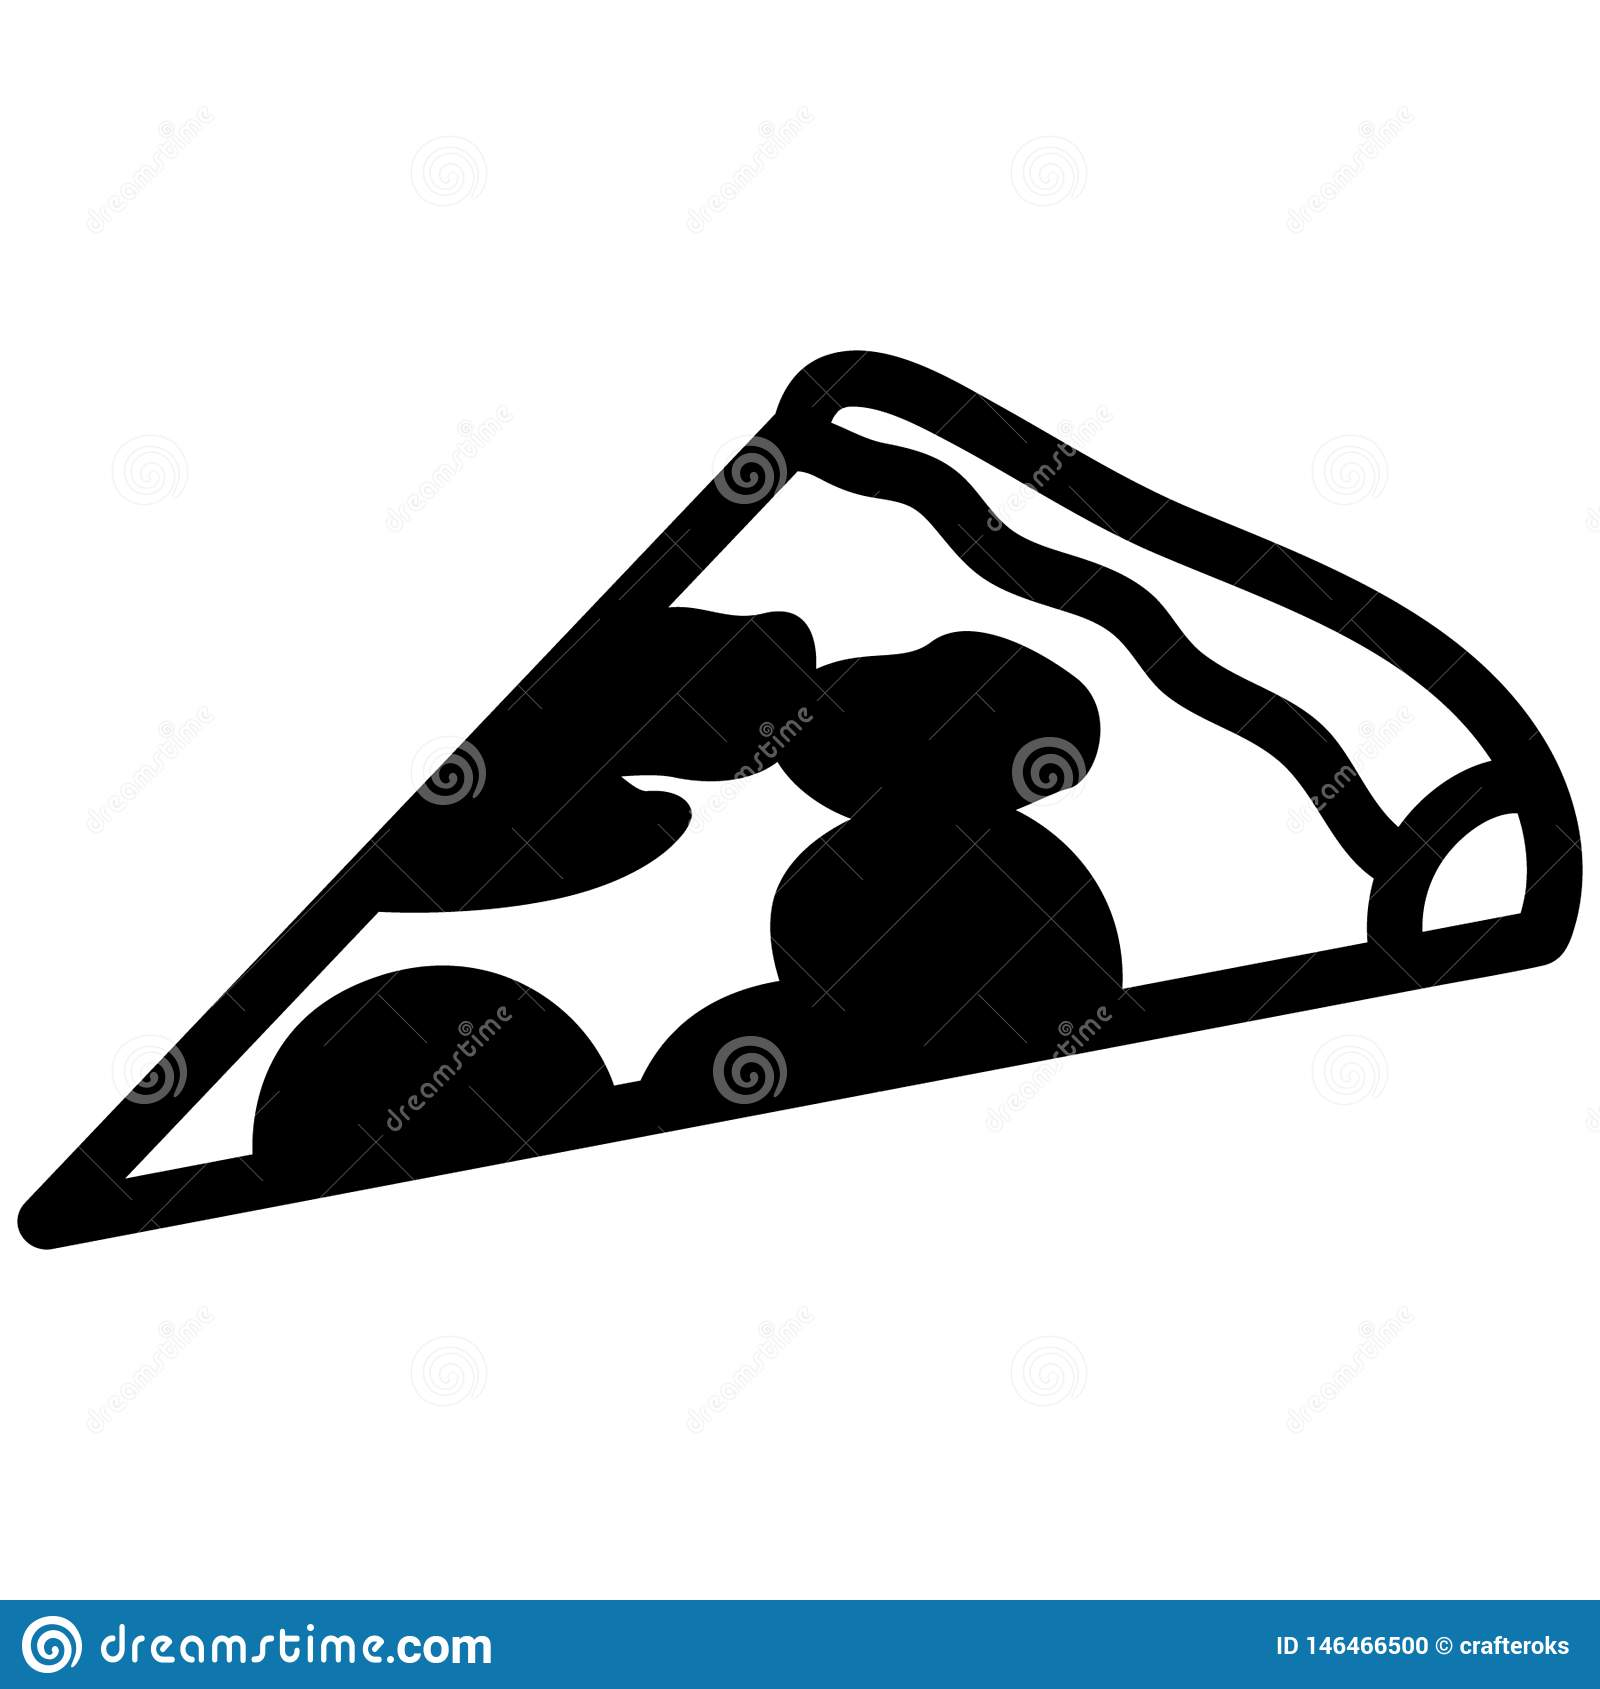 Pizza slice vector eps Hand drawn, Vector, Eps, Logo, Icon, silhouette Illustration by crafteroks for different uses.